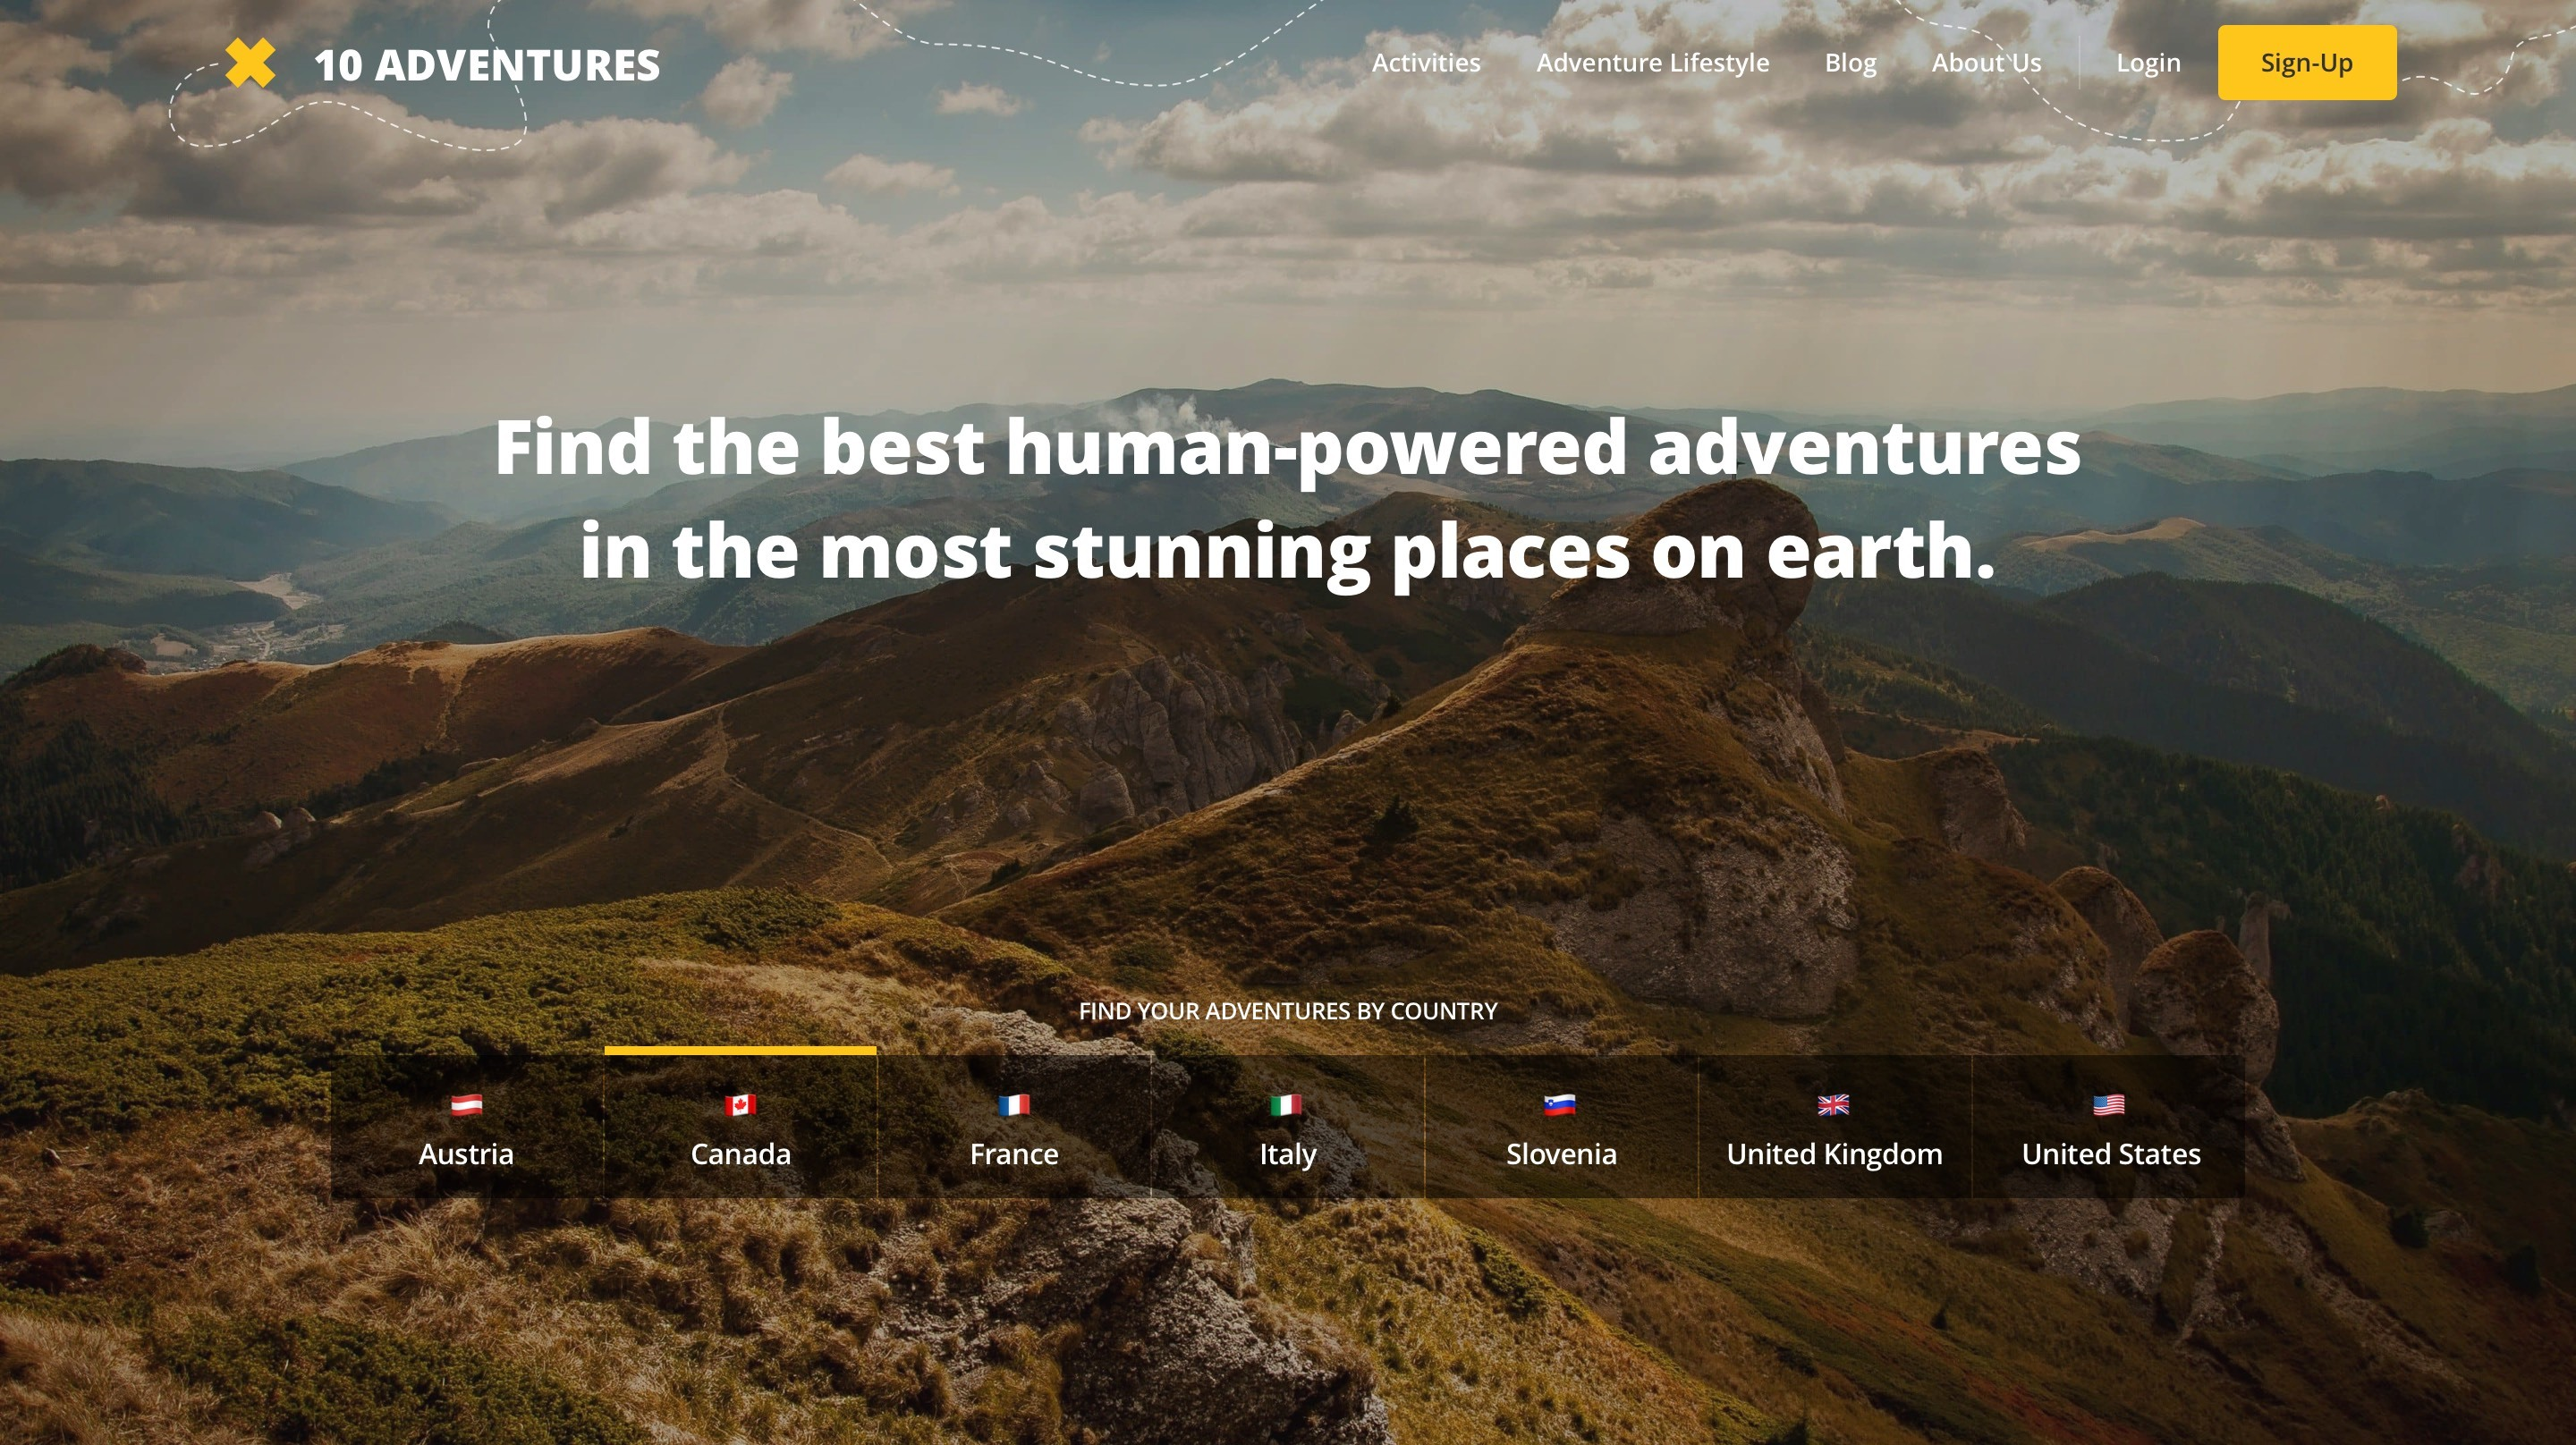 10 adventures home page